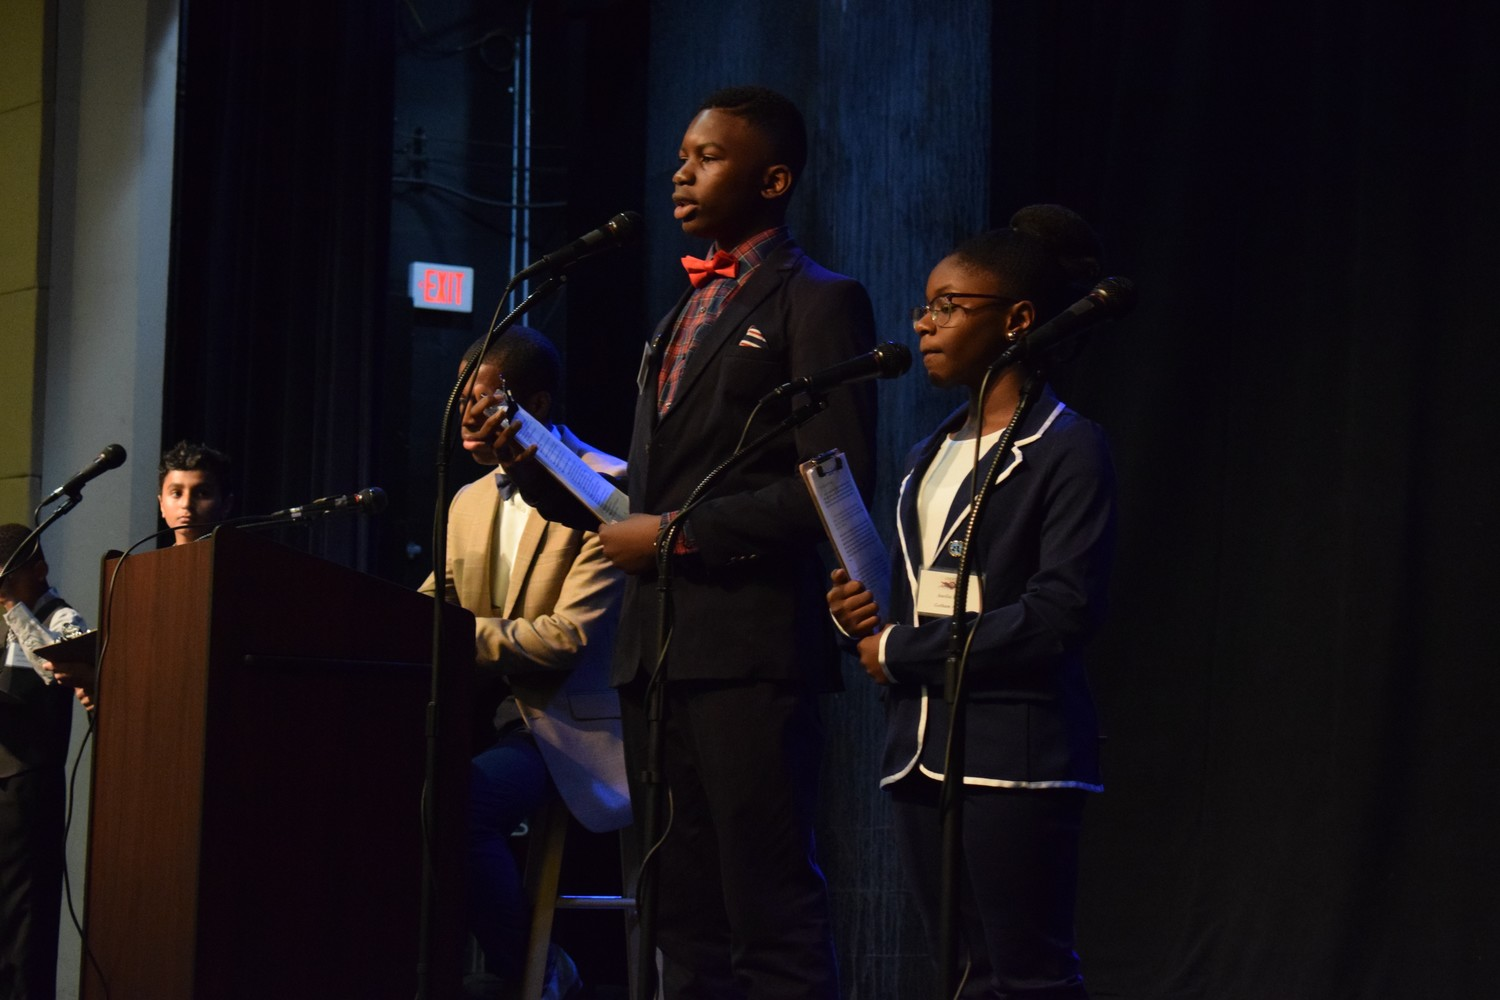 Gotham Avenue School's Osagie Ekhator and Anielia Bryan talked about Somalia's struggle with hunger.